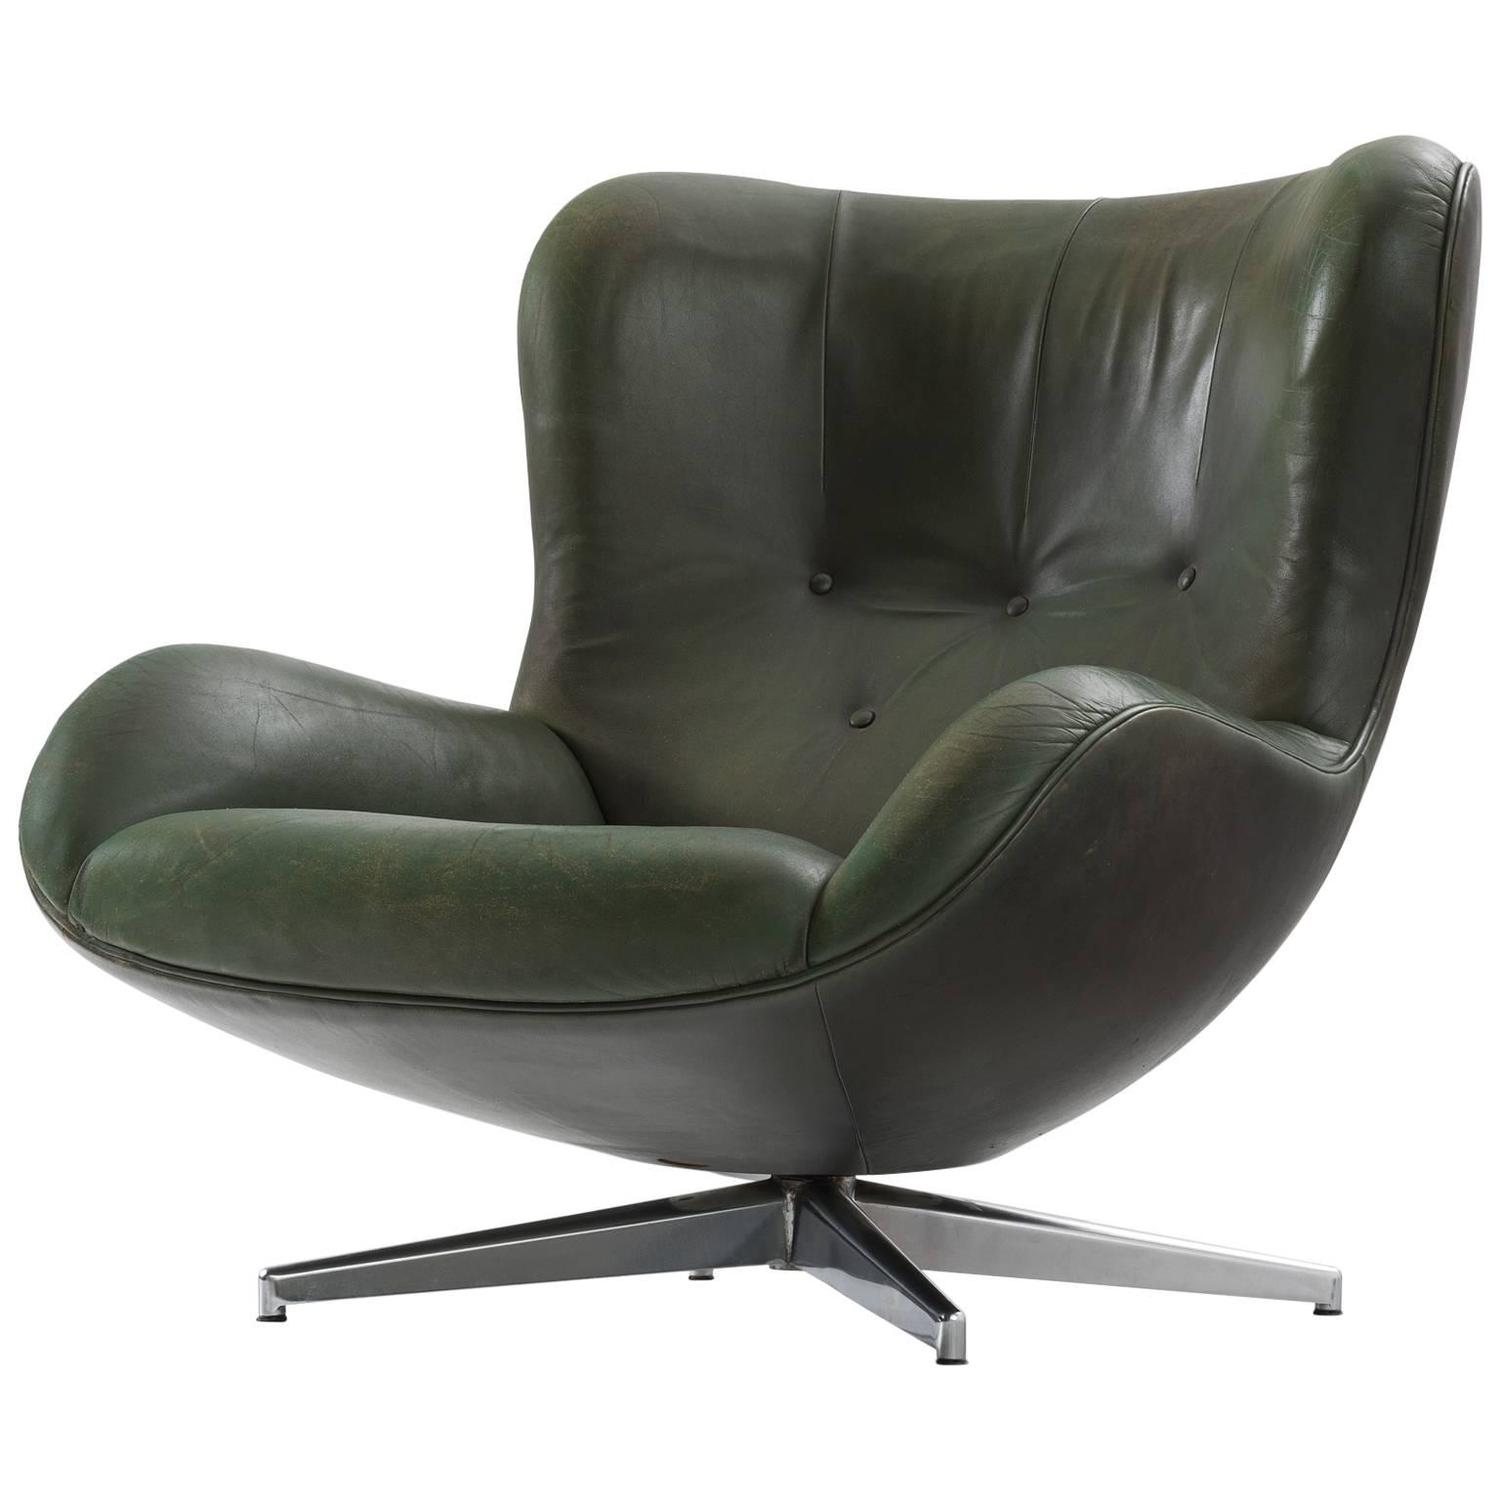 green lounge chair martha stewart covers illum wikkelsø leather swivel for sale